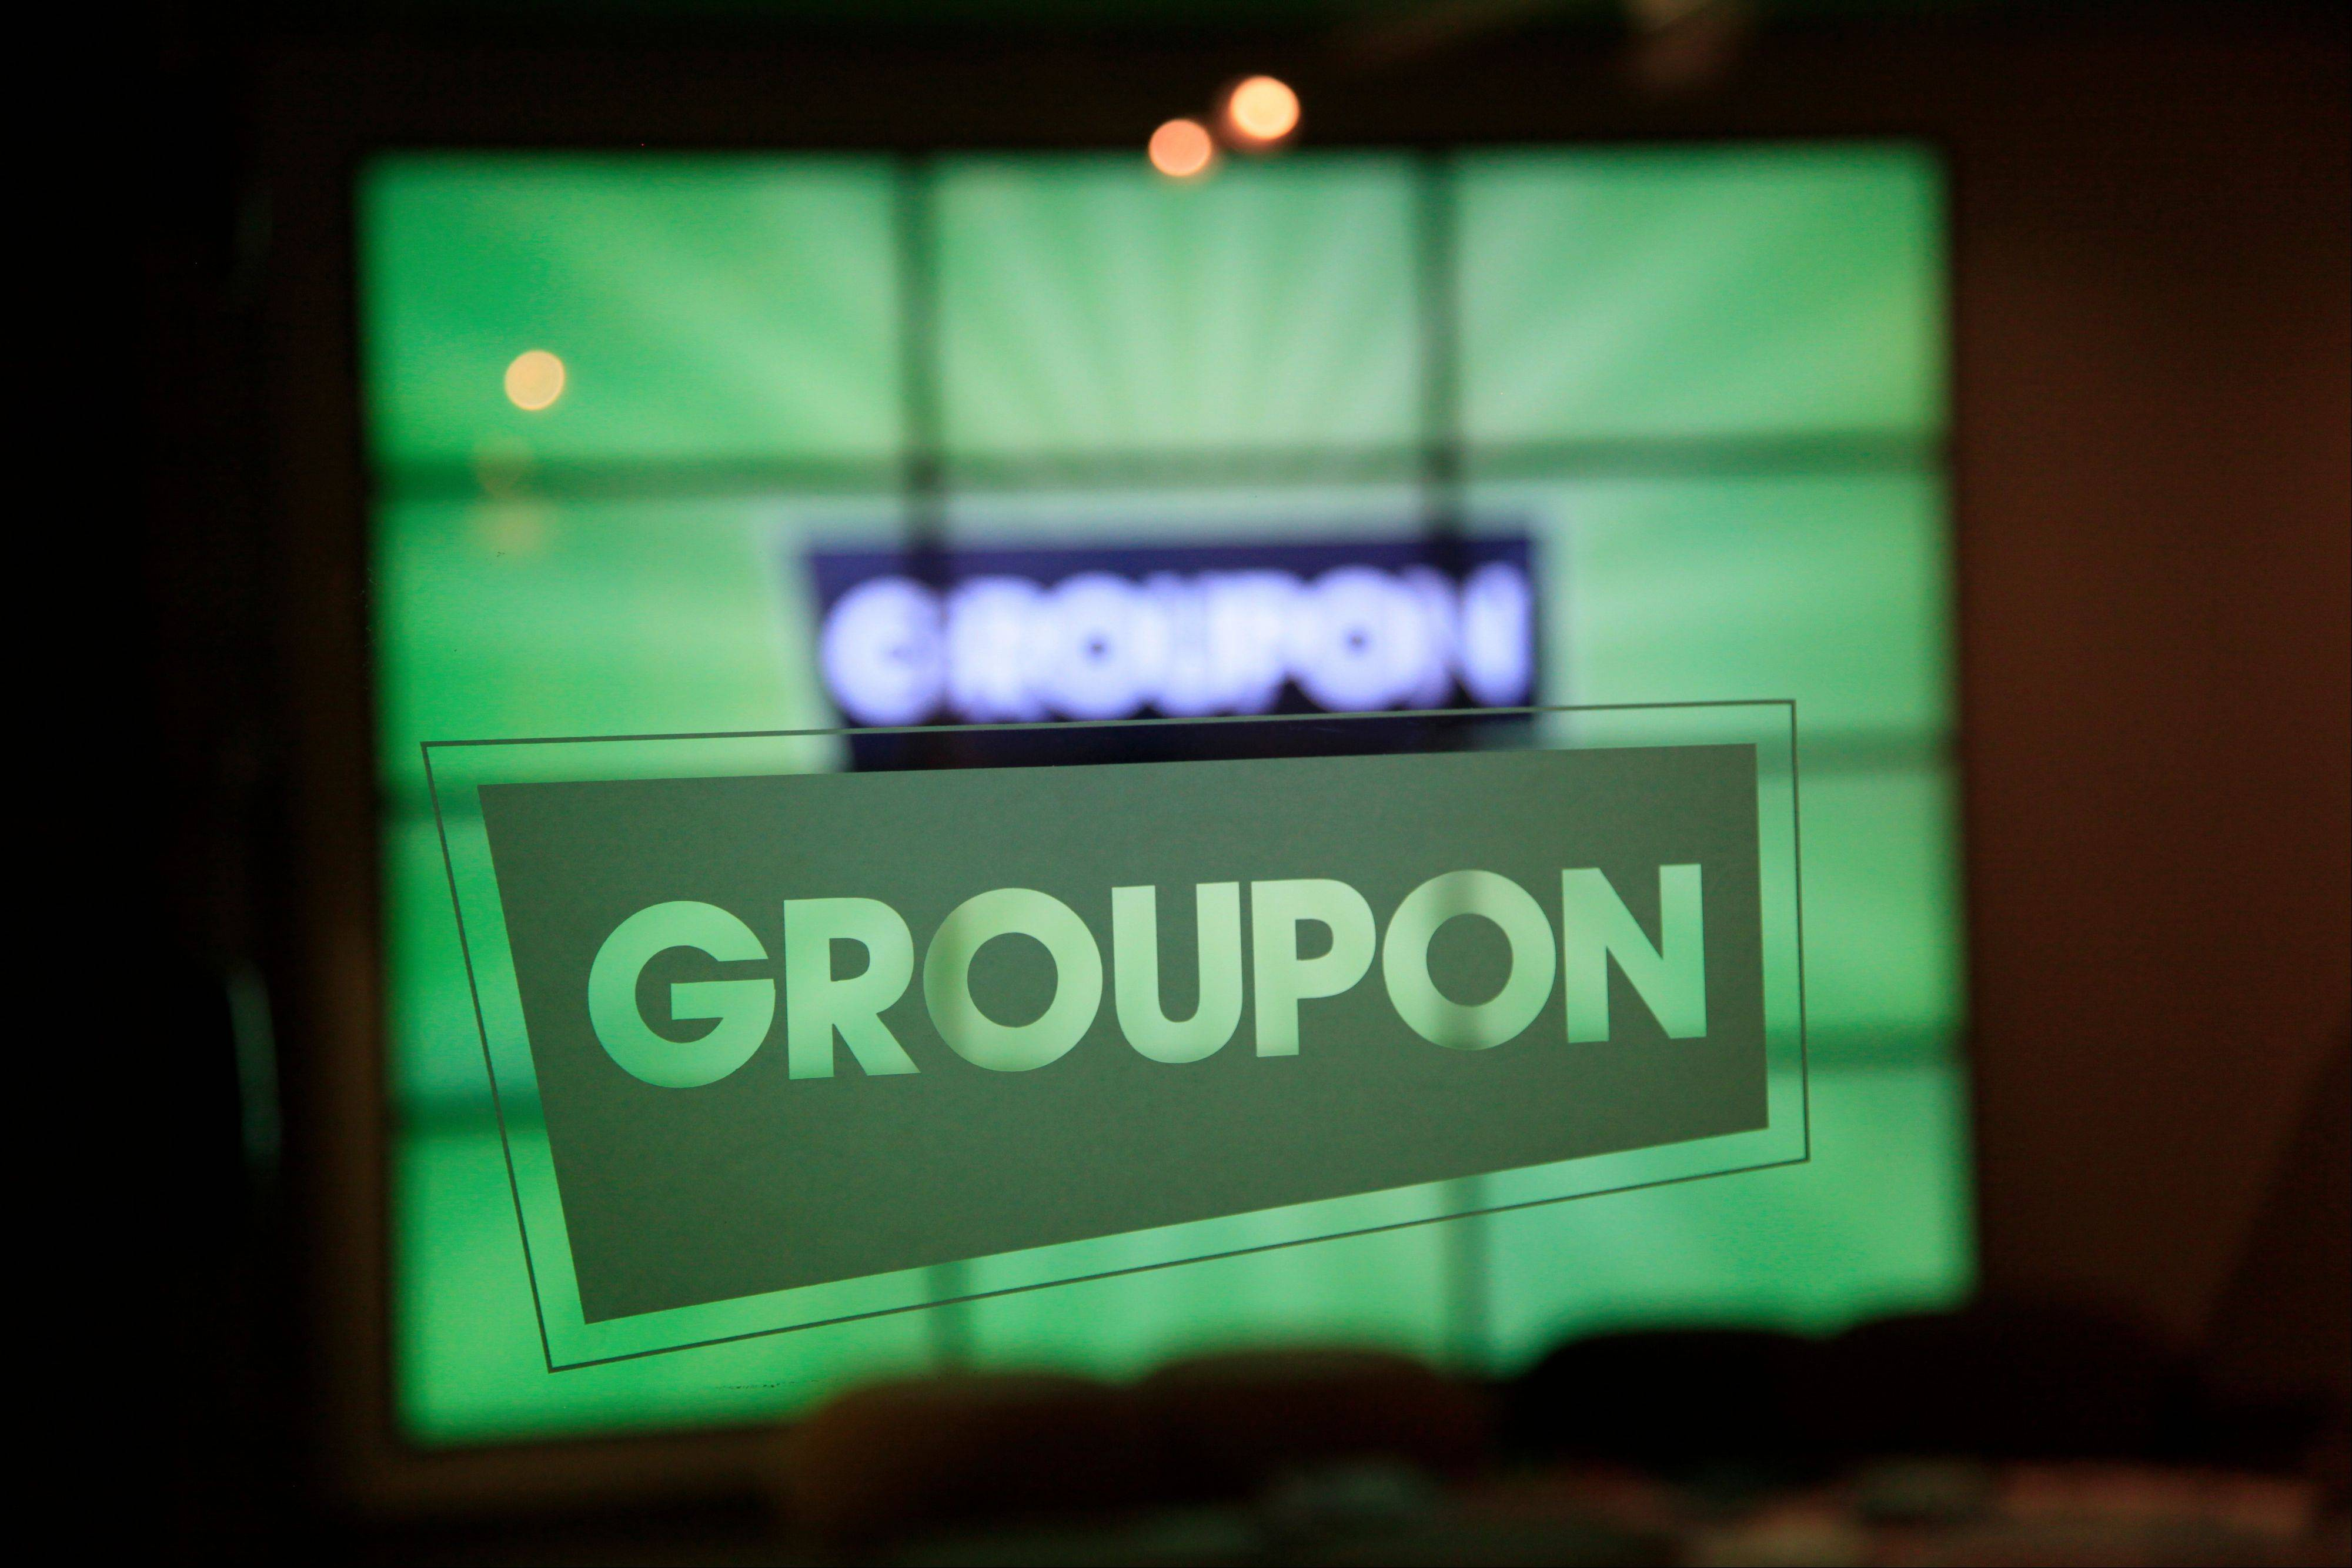 Groupon's stock soared Thursday after the beleaguered online deals company named co-founder Eric Lefkofsky permanent CEO and posted stronger-than-expected revenue for the second quarter.